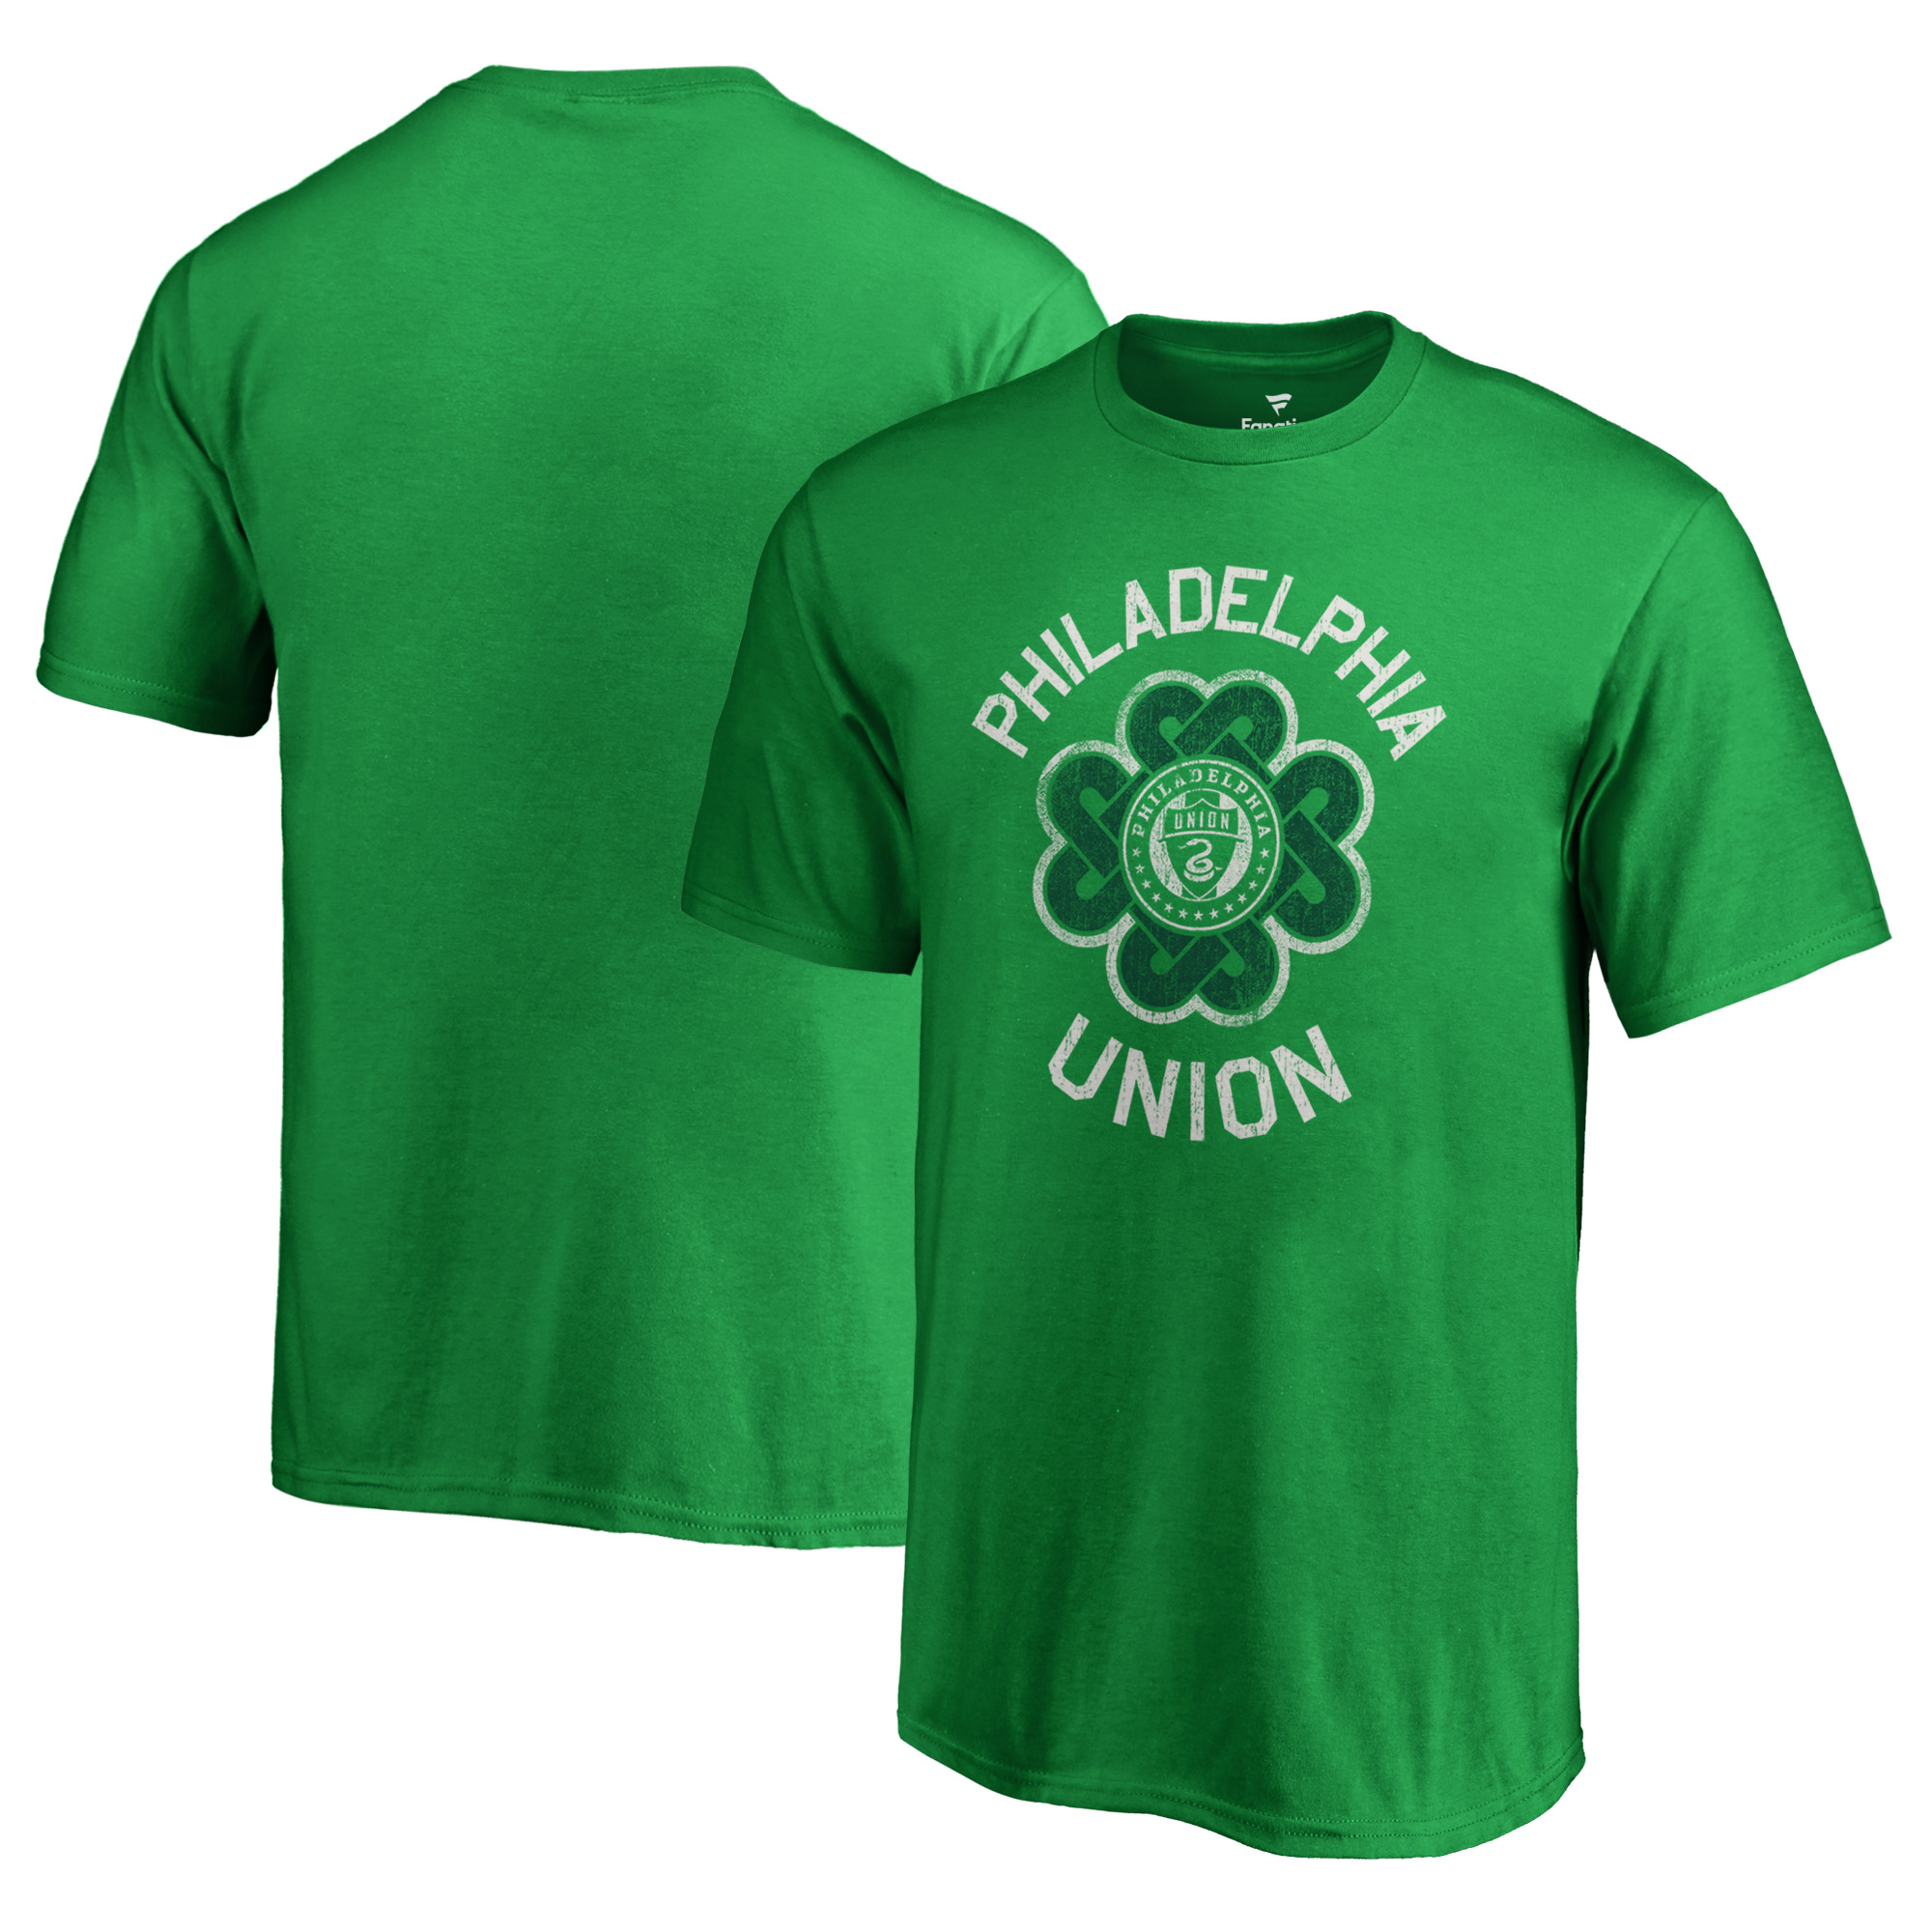 Philadelphia Union Fanatics Branded Youth St. Patrick's Day Luck Tradition T-Shirt - Kelly Green